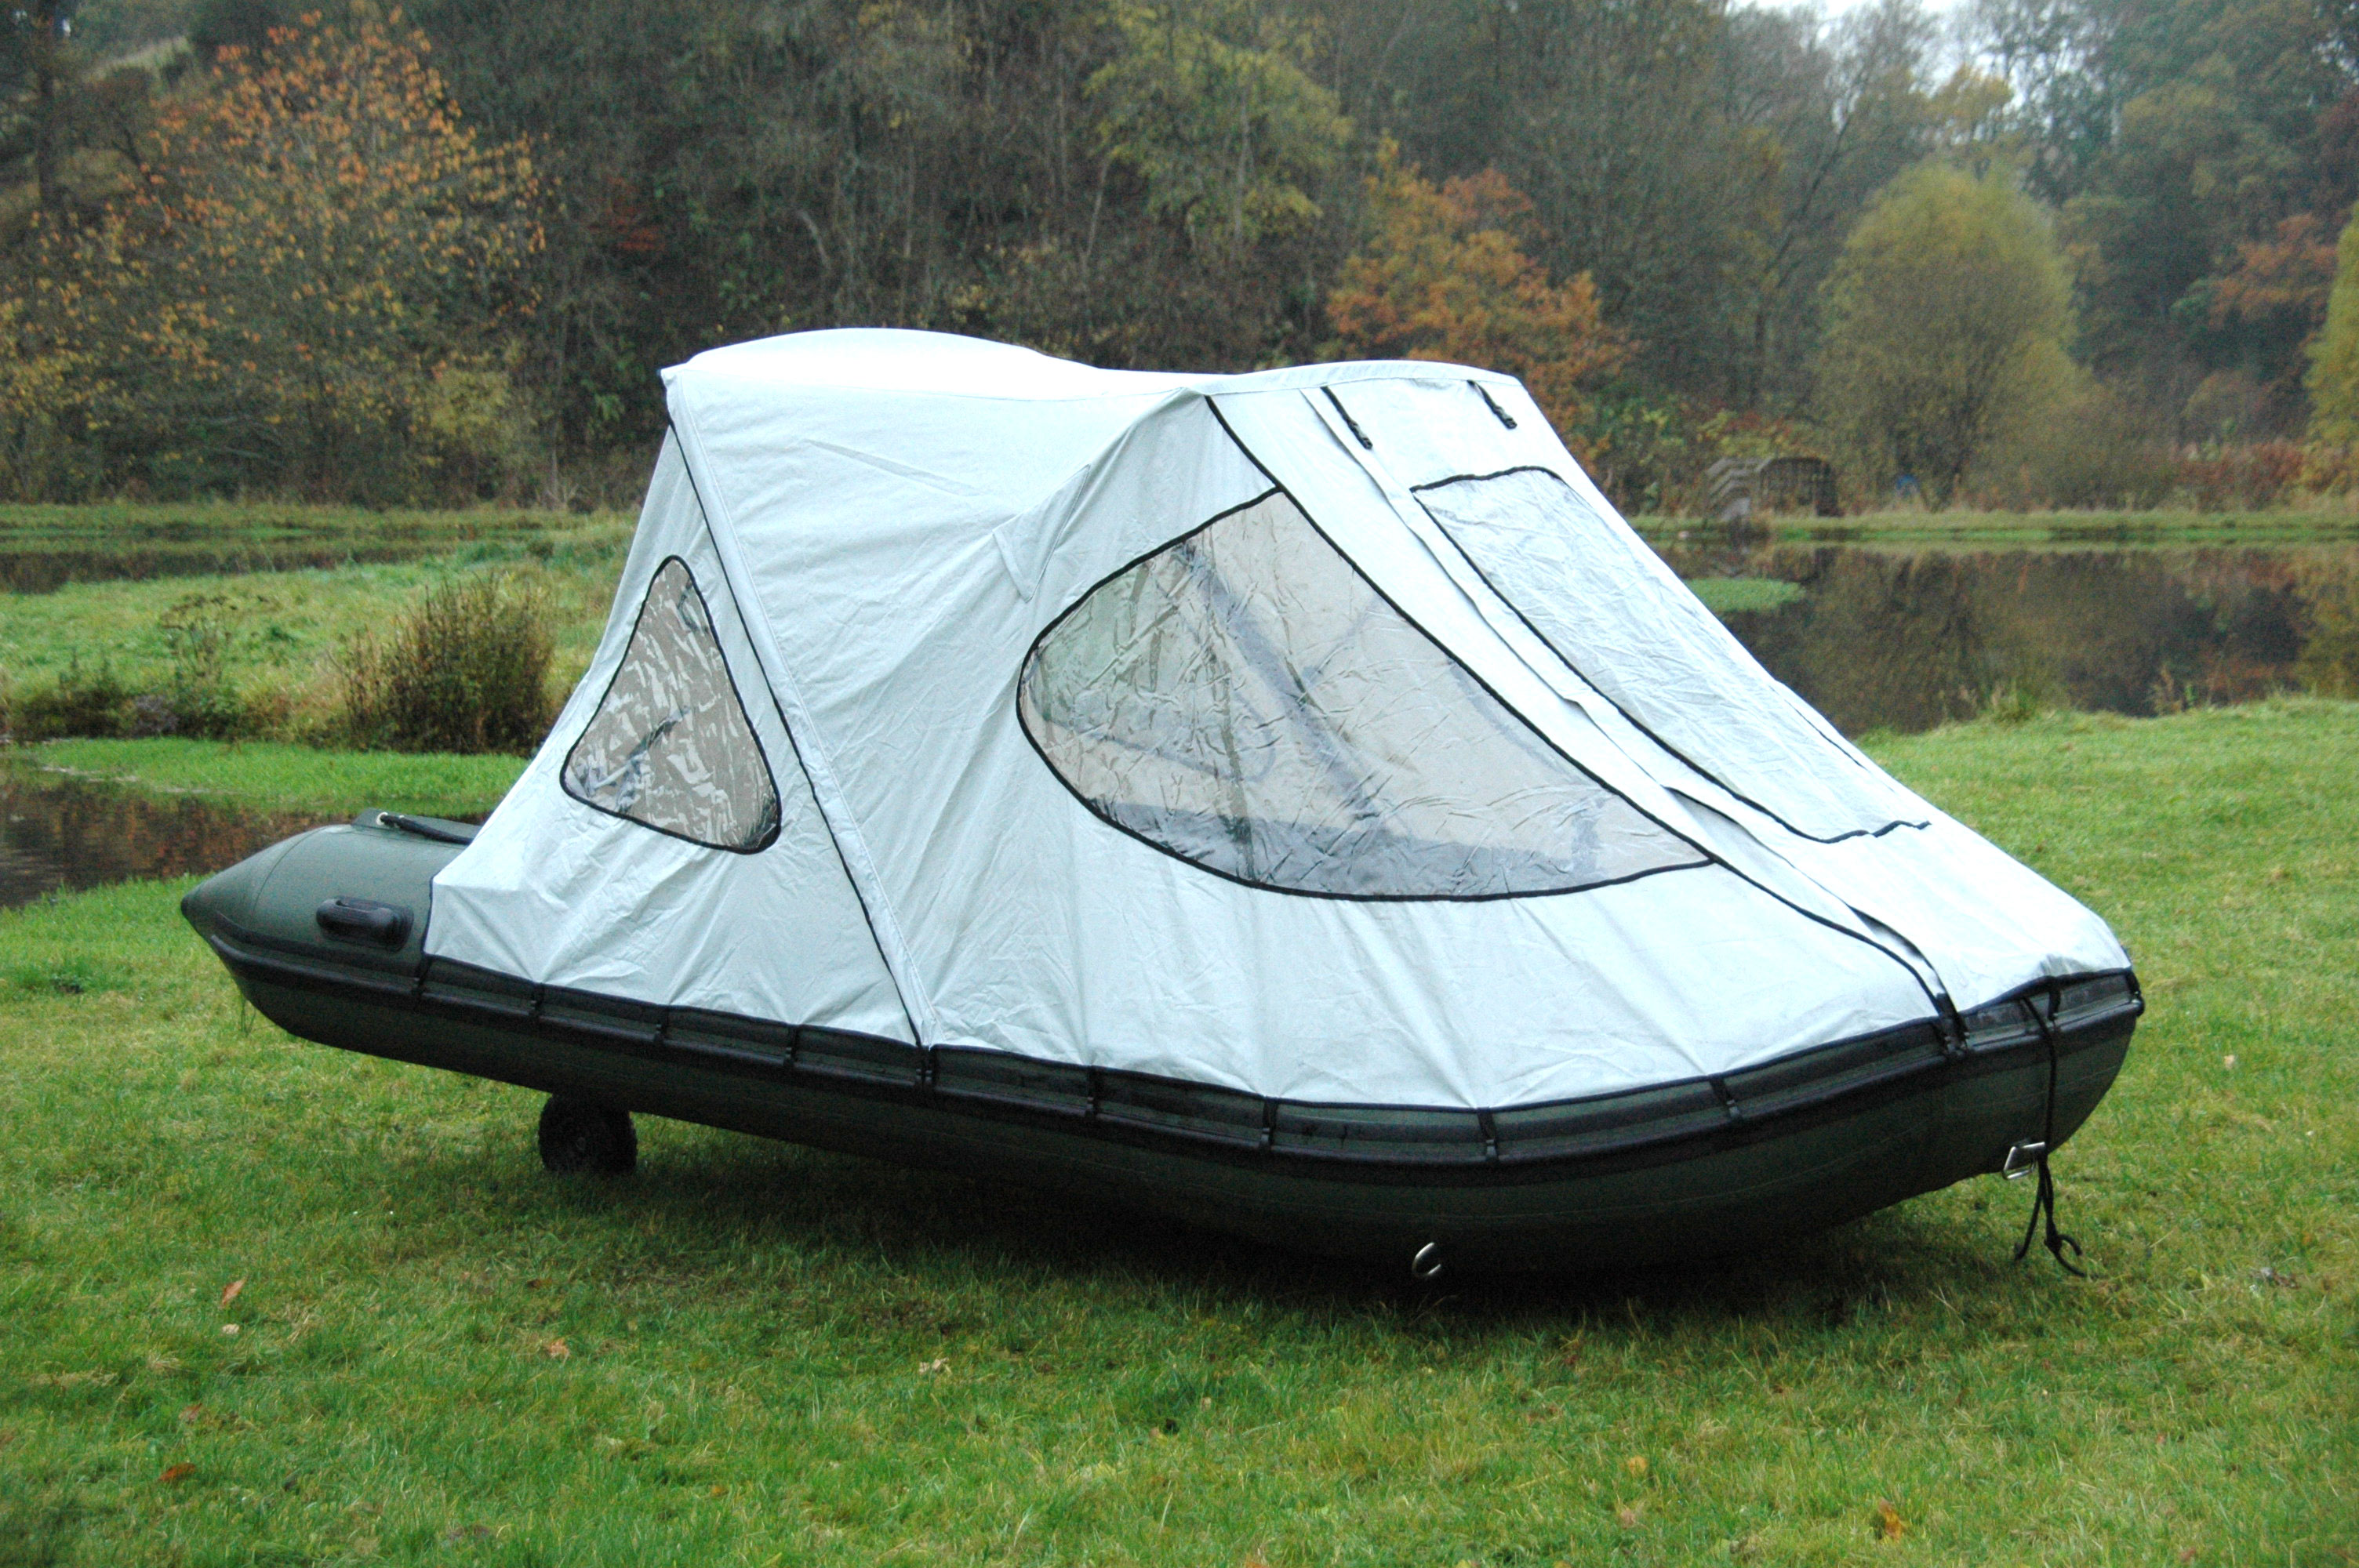 BISON-MARINE-BIMINI-COCKPIT-TENT-CANOPY-FOR-INFLATABLE- & BISON MARINE BIMINI COCKPIT TENT CANOPY FOR INFLATABLE BOAT | eBay